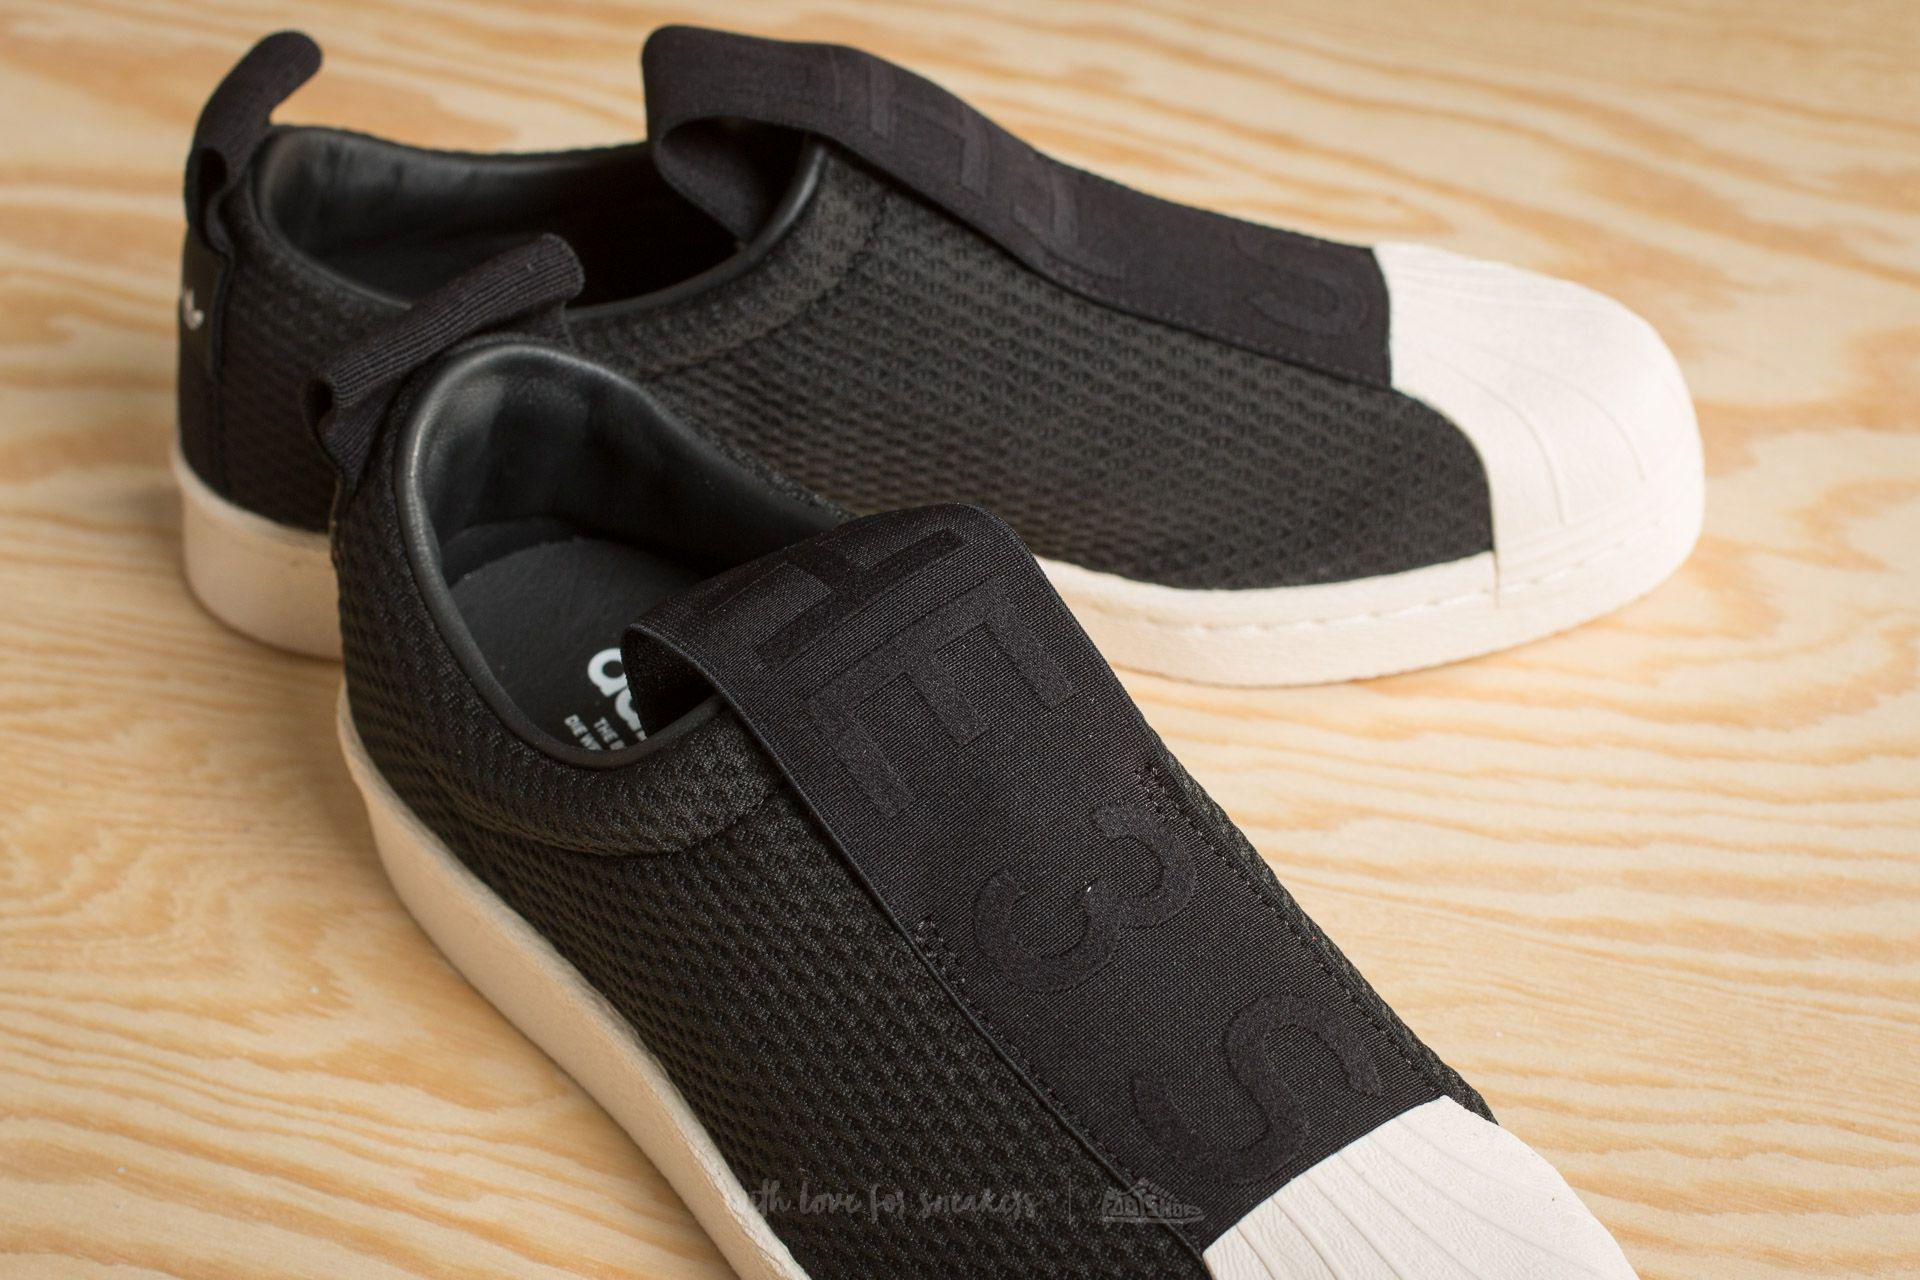 Lyst - adidas Originals Adidas Superstar Bw35 Slip On W Core Black ... 68b78dbf2